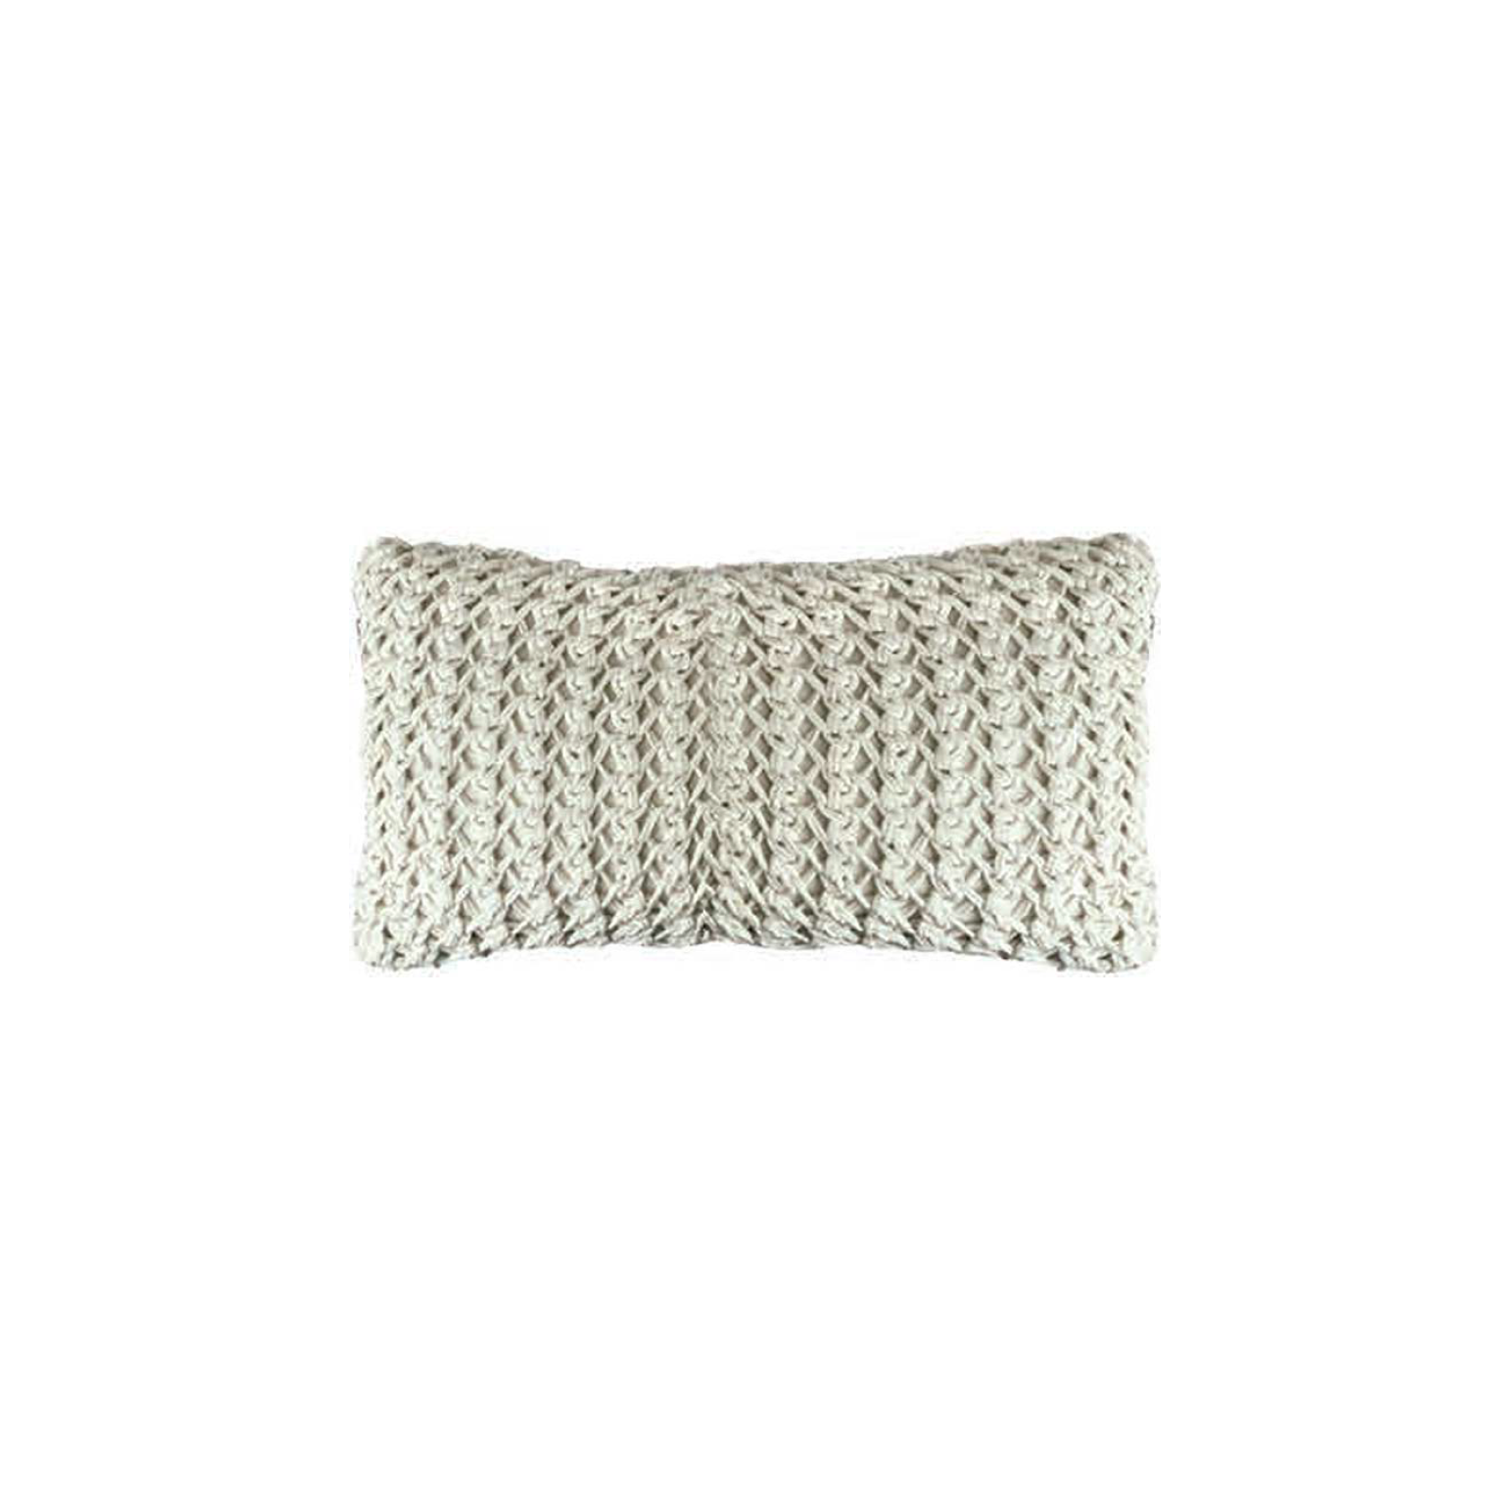 Gaia Knitted Cotton Cushion Small - The Gaia Line is carefully knitted within a trained community of women that found in their craft a way to provide for their families, each one of these cushions and throws is unique.  Elisa Atheniense Home soft indoors collection is made with natural cotton fibres, eco-friendly, handwoven or elaborated using traditional hand-loom techniques. The use of organic materials brings softness and comfort to the space. This collection combines their mission for responsible sourcing and manufacturing.  The hand woven cotton, washable cushion cover is made in Brazil and the inner cushion is made in the UK. All cushions come with Hollow Fibre filling. European Duck Feathers are optional upon request at an extra cost. Please enquire for more information and see colour chart for reference.   | Matter of Stuff